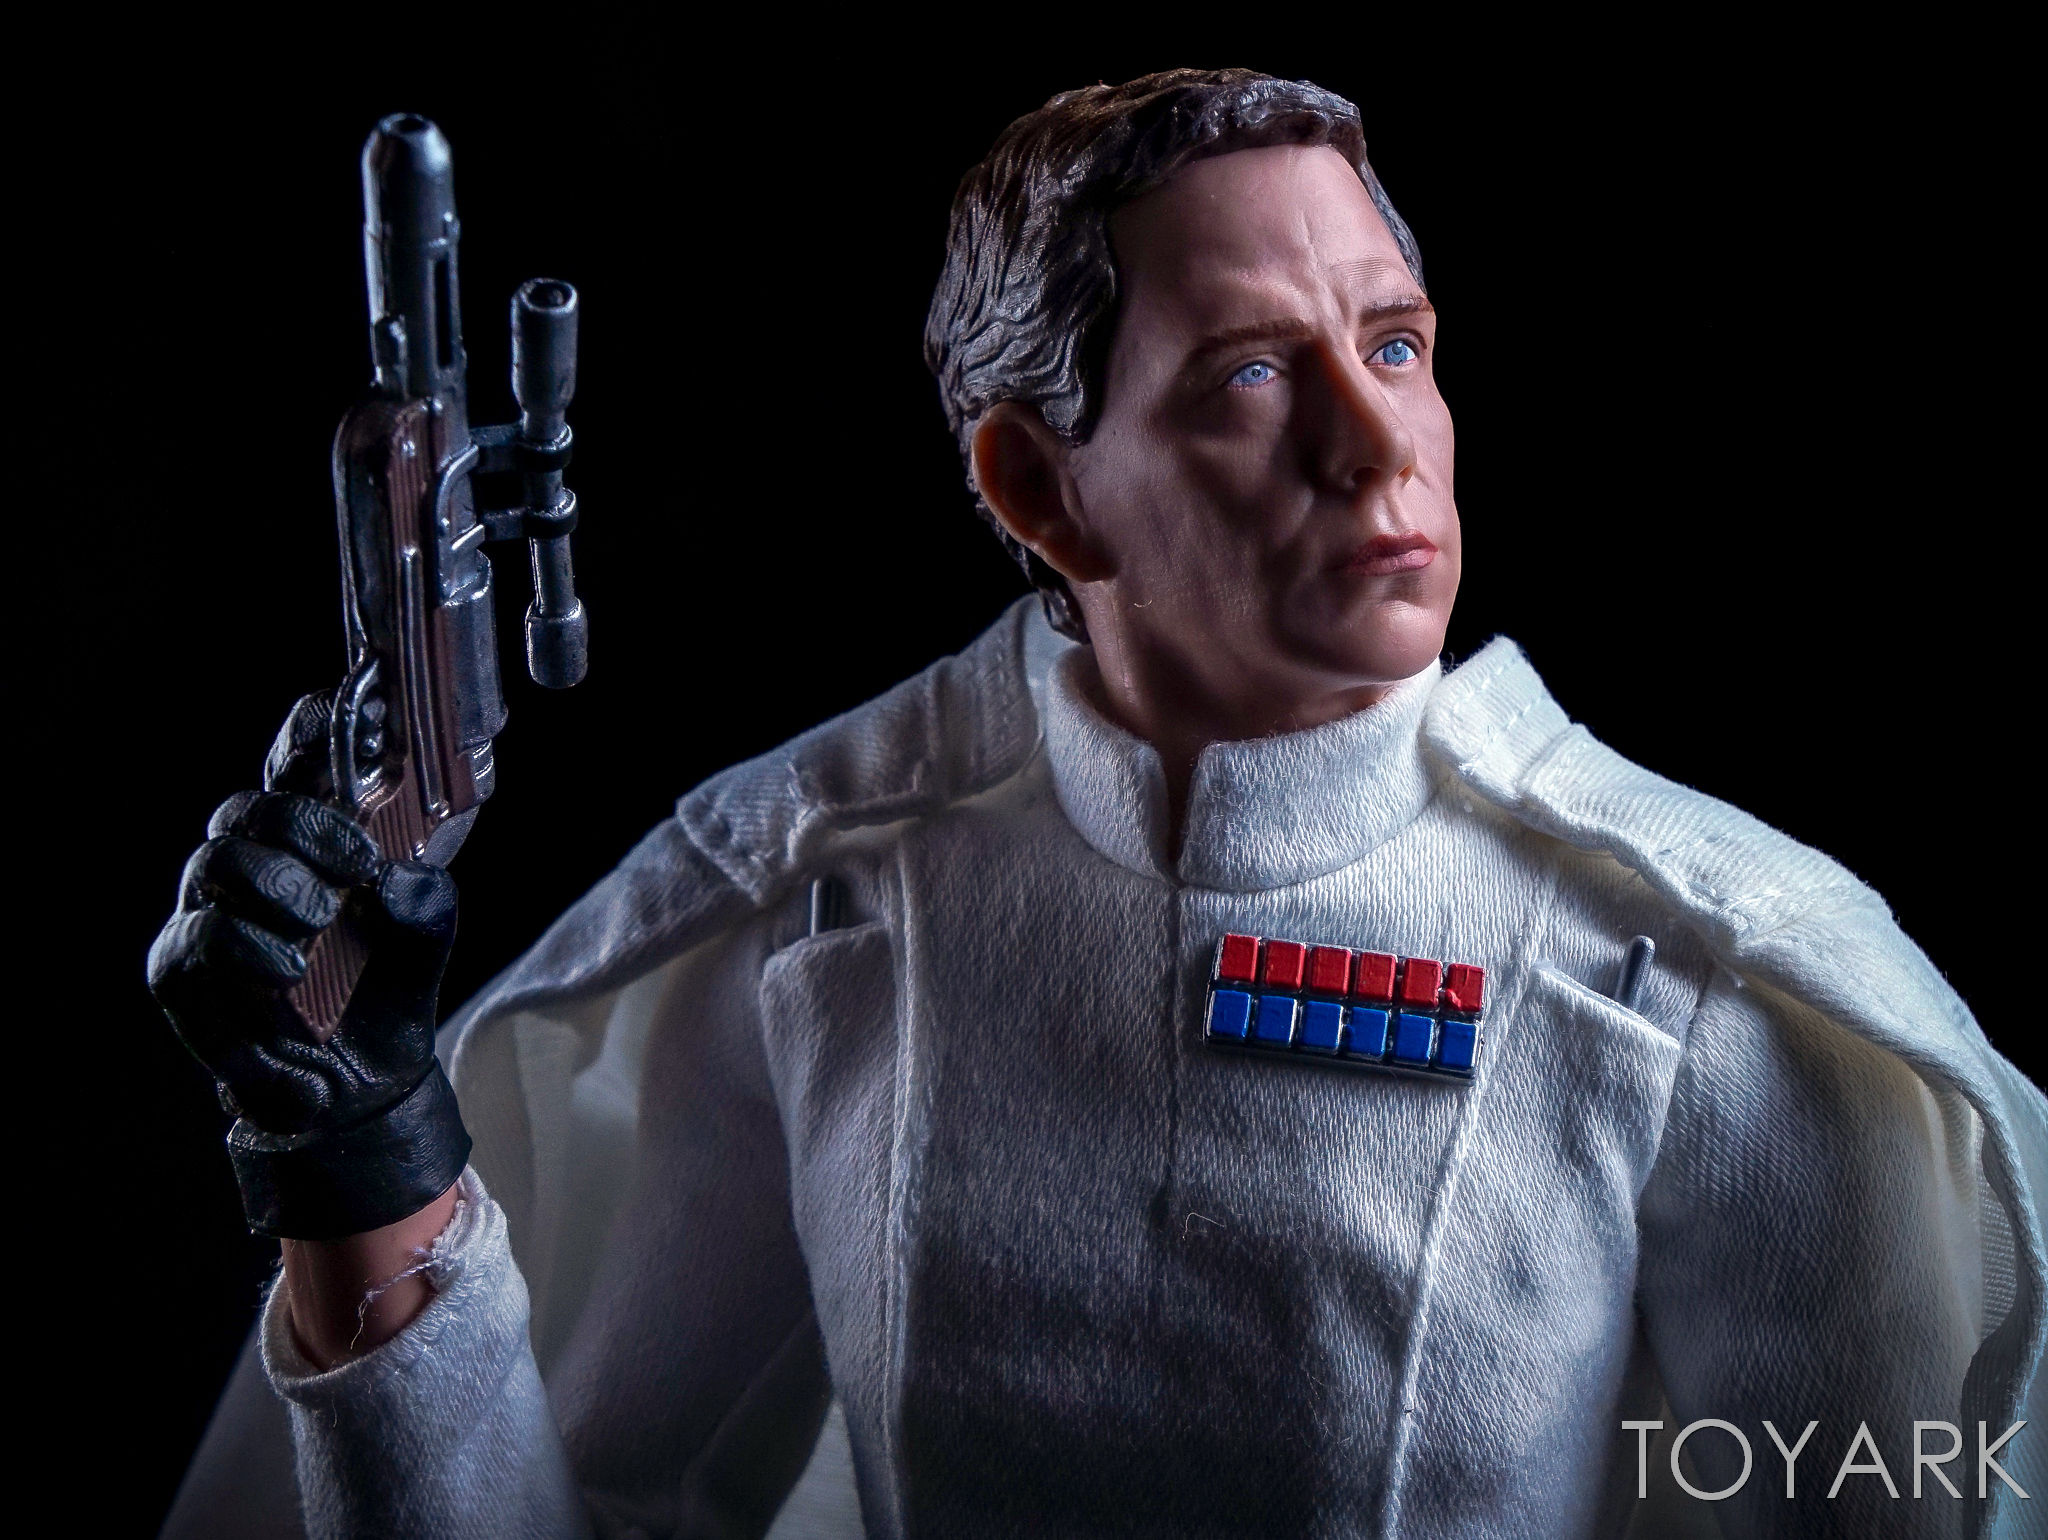 http://news.toyark.com/wp-content/uploads/sites/4/2017/01/Disney-Rogue-One-Elite-Premium-034.jpg